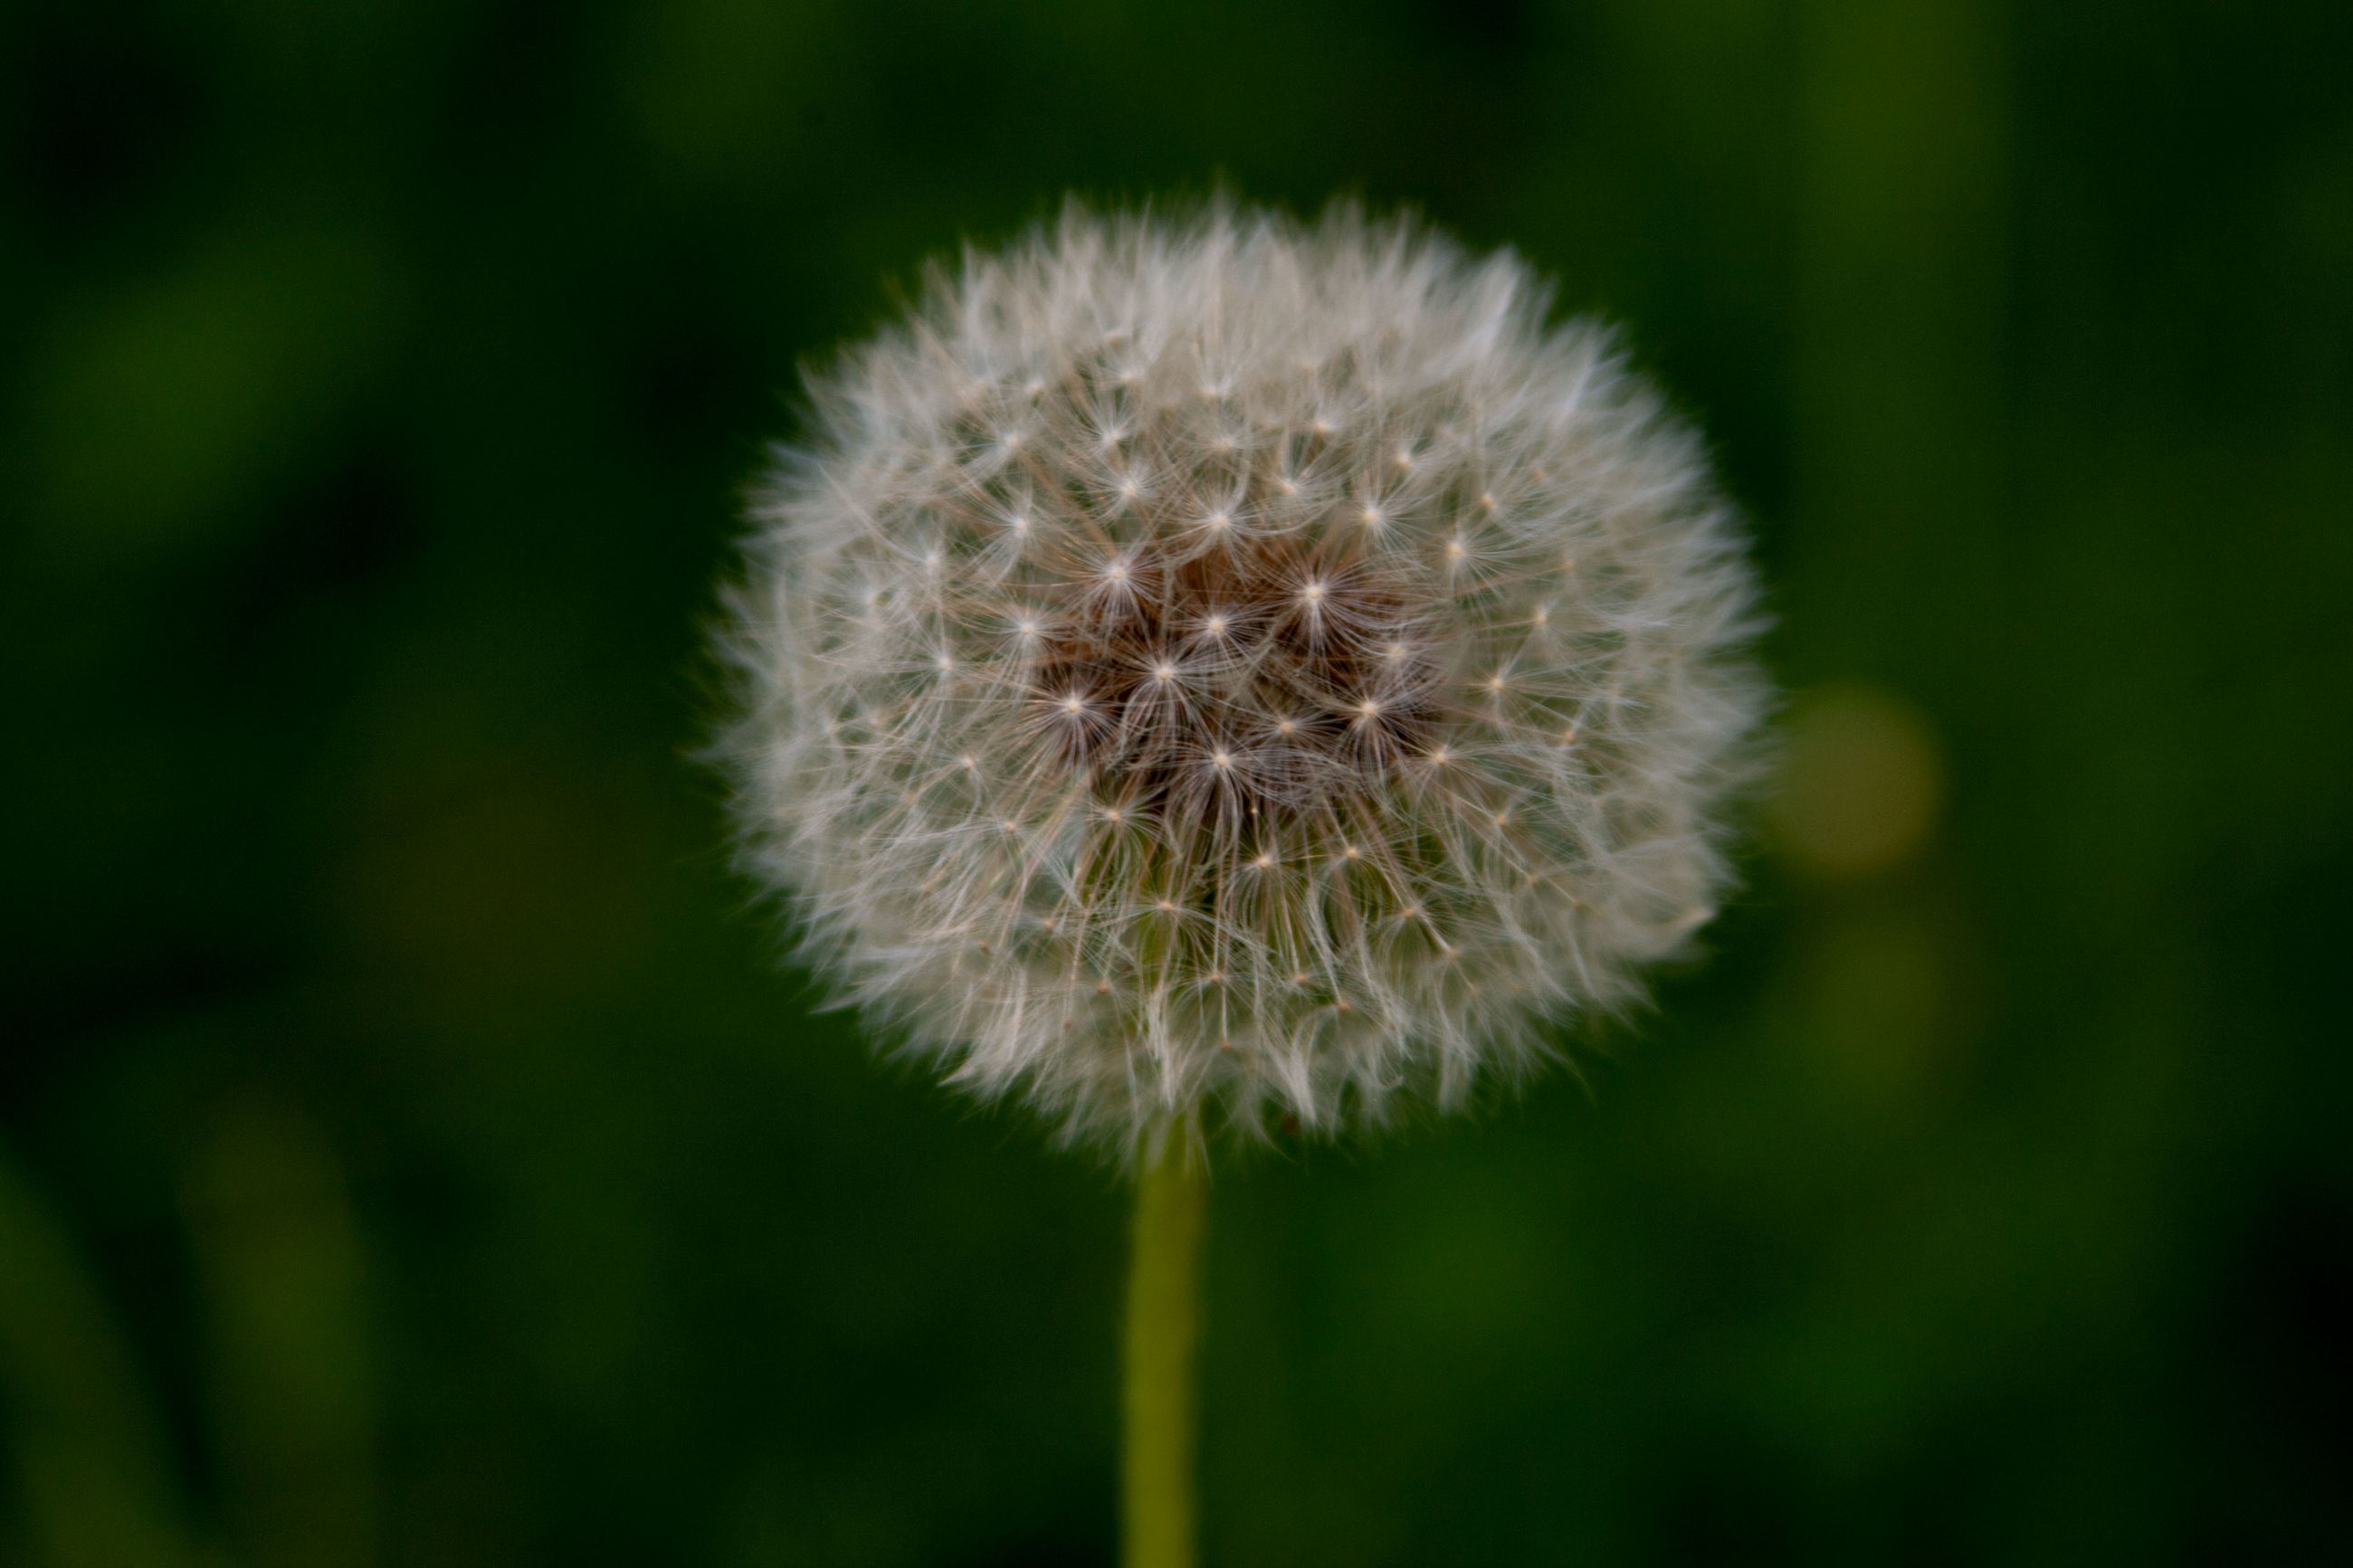 plant, dandelion, freshness, vulnerability, flower, beauty in nature, close-up, fragility, flowering plant, growth, inflorescence, flower head, no people, focus on foreground, nature, softness, dandelion seed, day, plant stem, outdoors